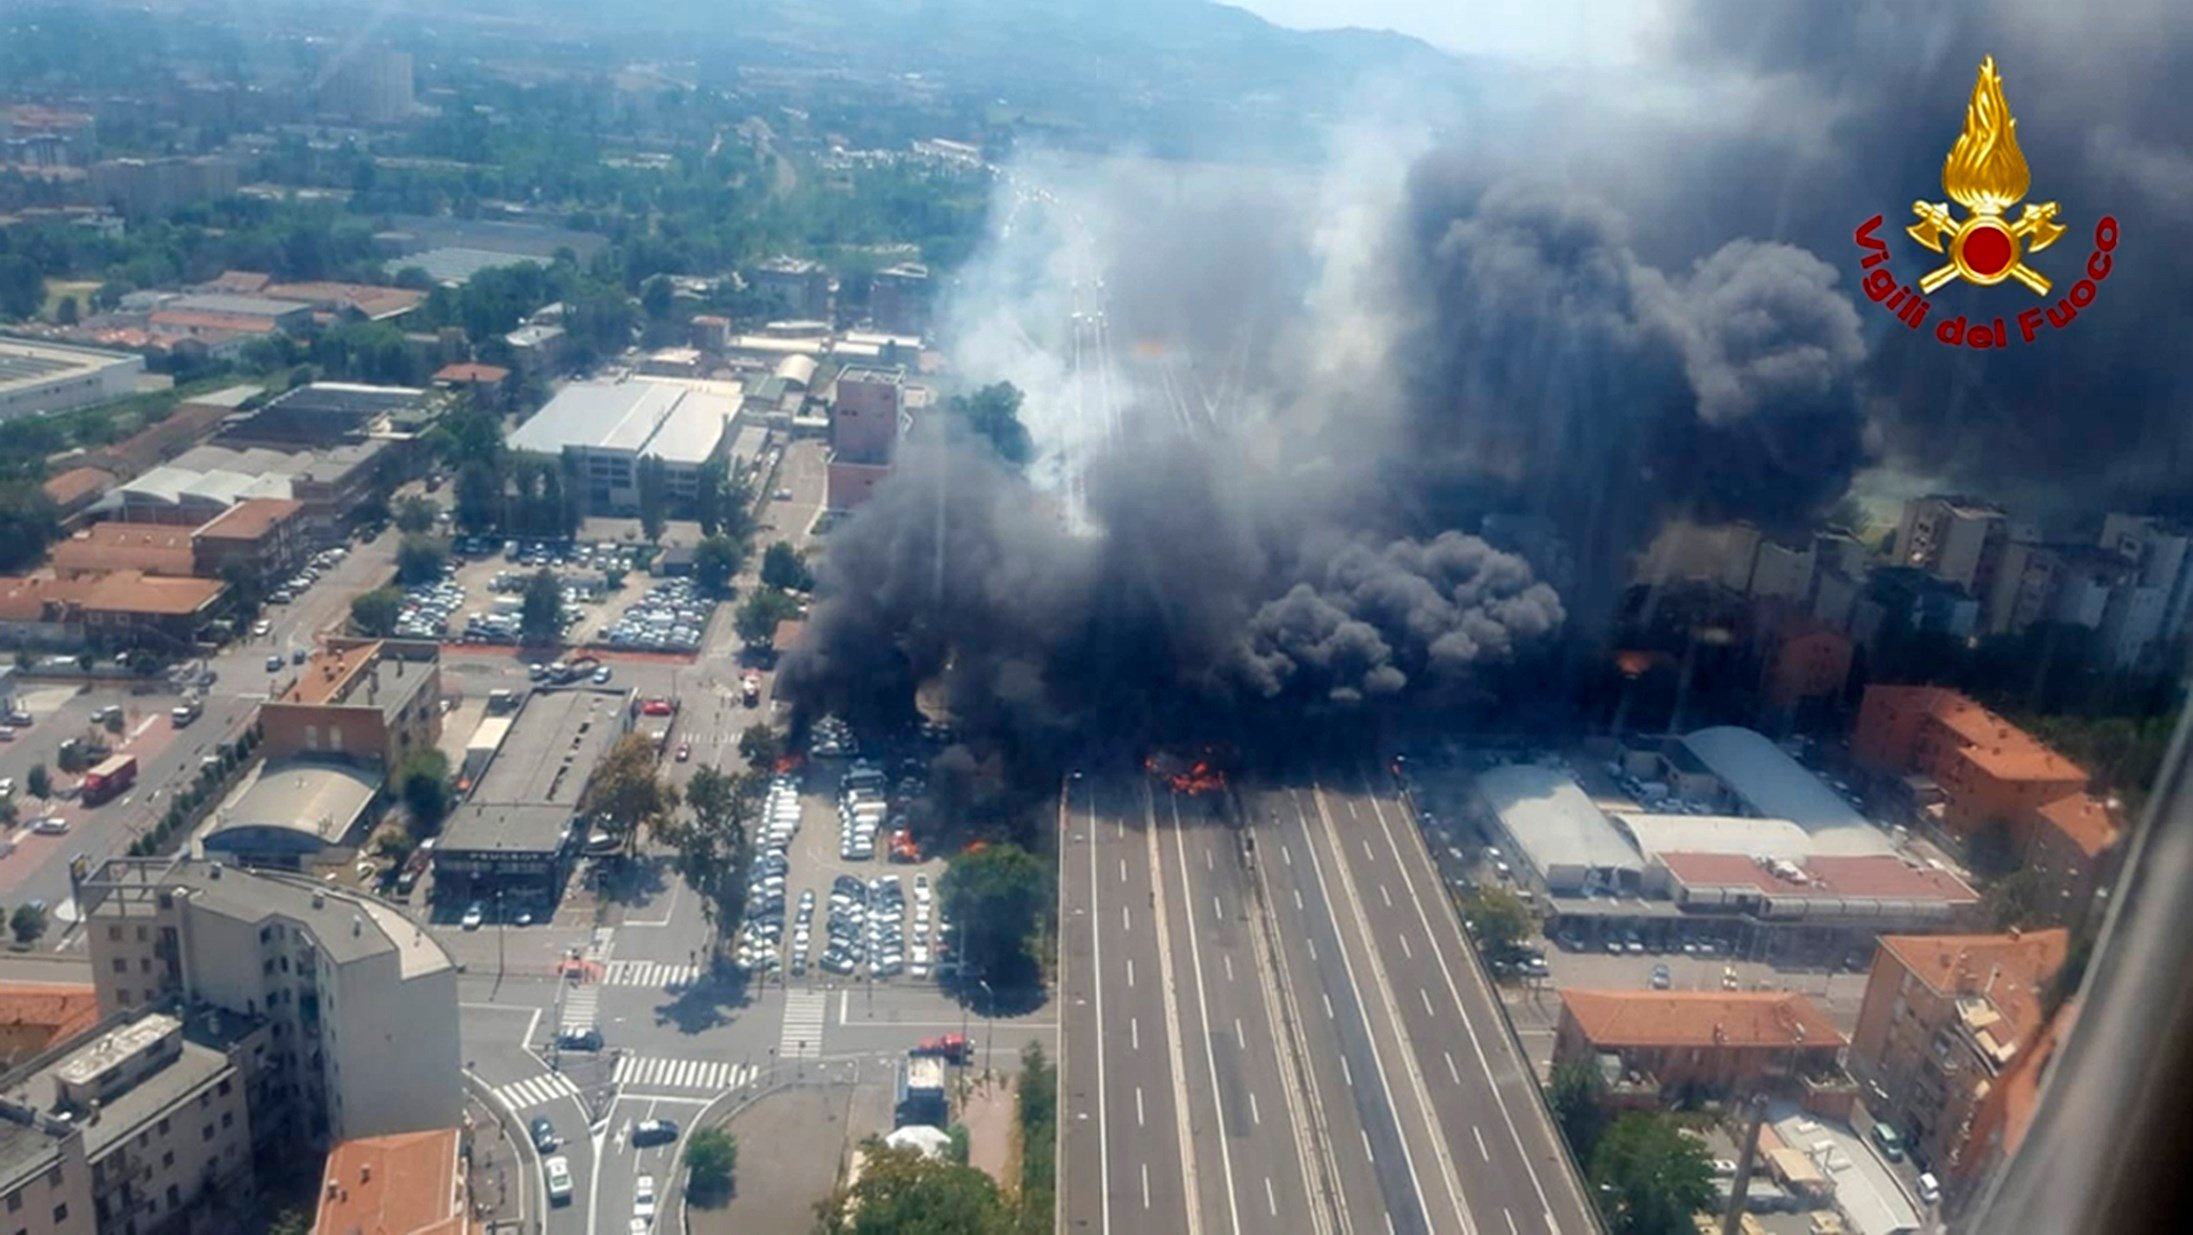 A photo shows a helicopter view of the explosion on a highway in the outskirts of Bologna, Italy, on Monday. The explosion was reportedly caused by an accident involving a truck that was carrying flammable substances. (Vigili Del Fuoco via AP)